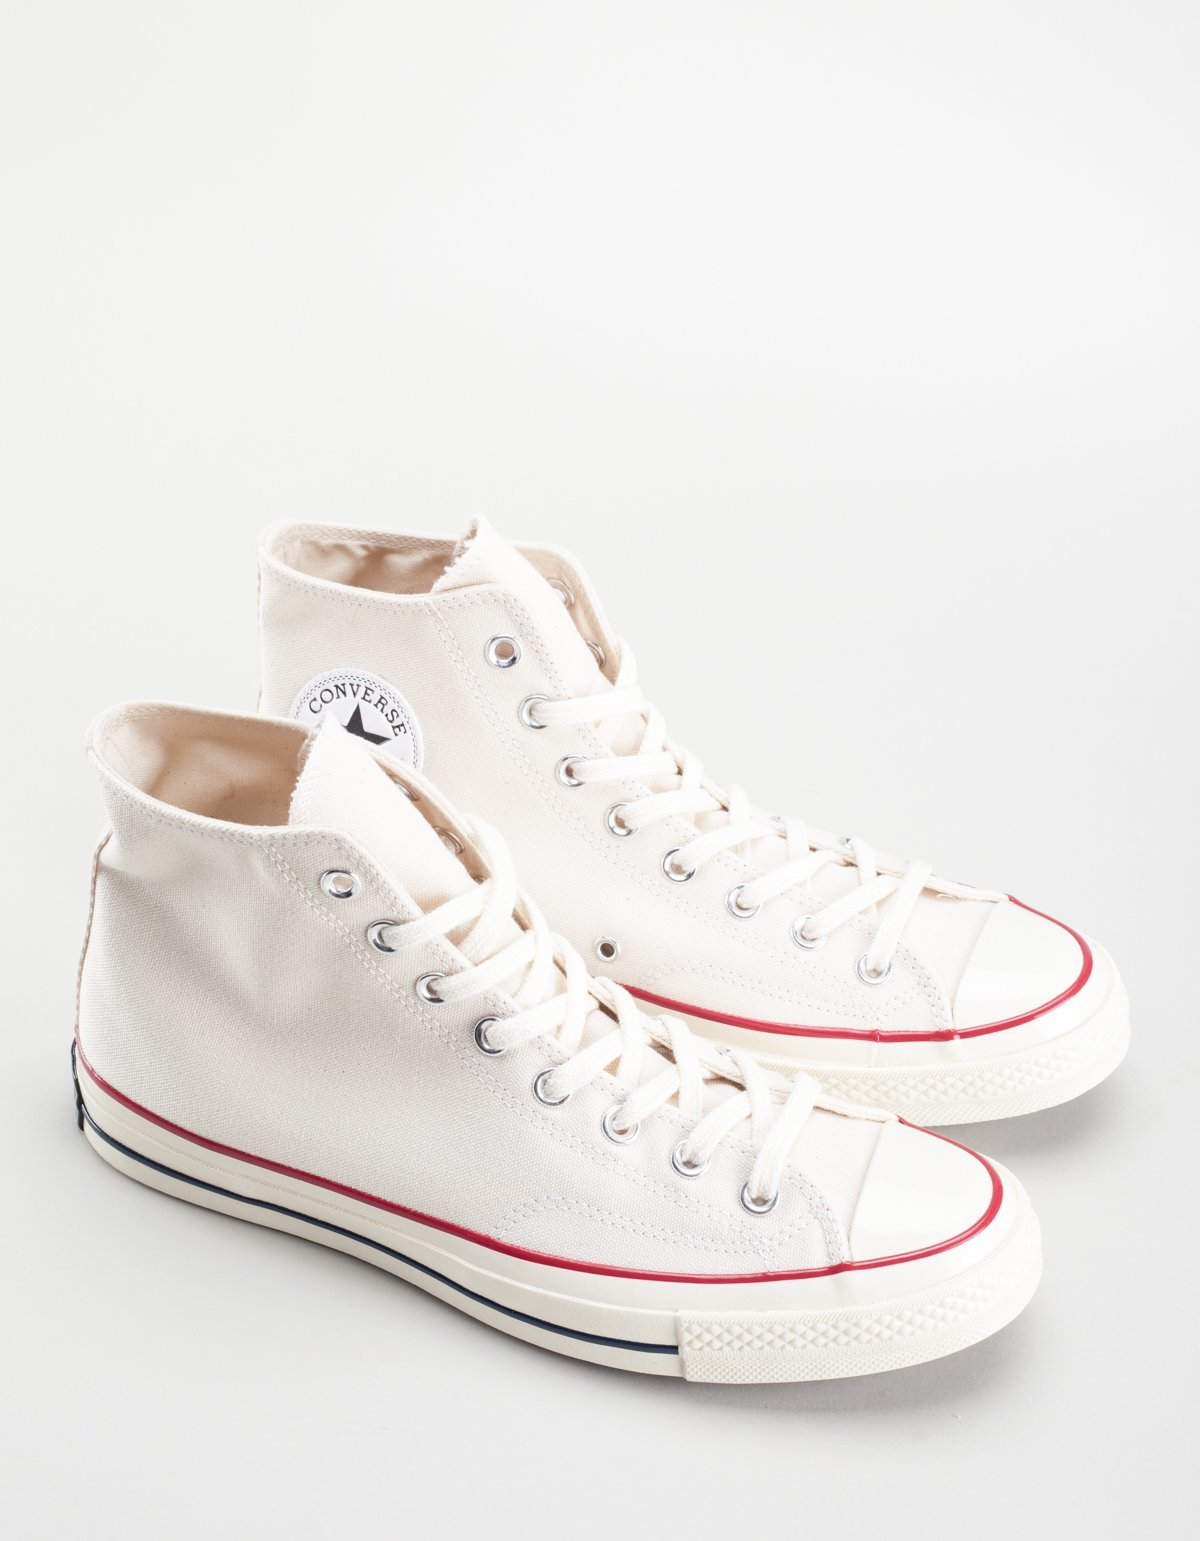 6a1763801eeed4 Converse Chuck Taylor All Star  70 High Top Parchment